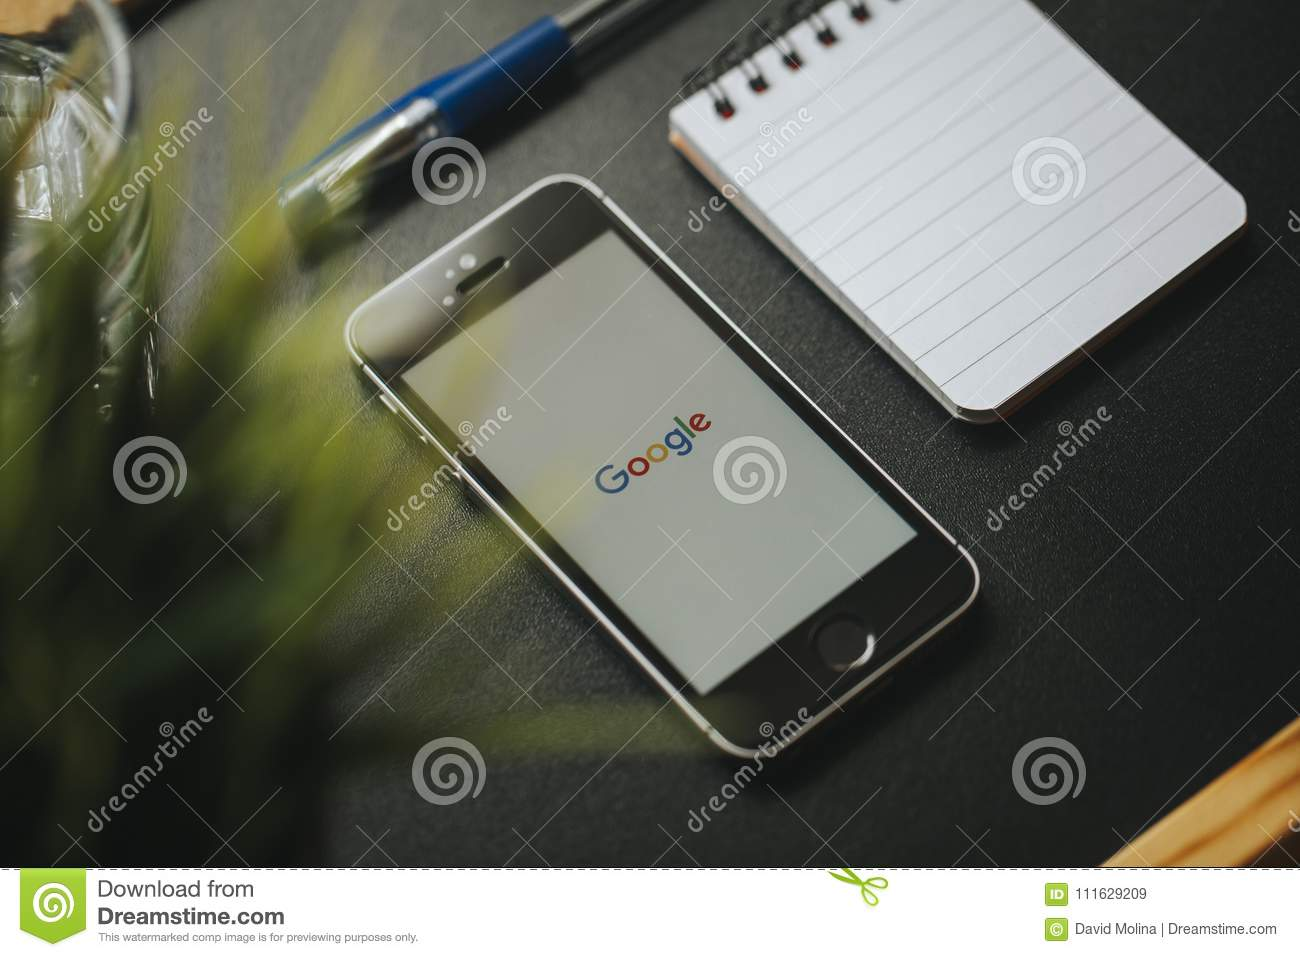 MALAGA, SPAIN - MARCH 6, 2018: Google App In A Mobile Phone